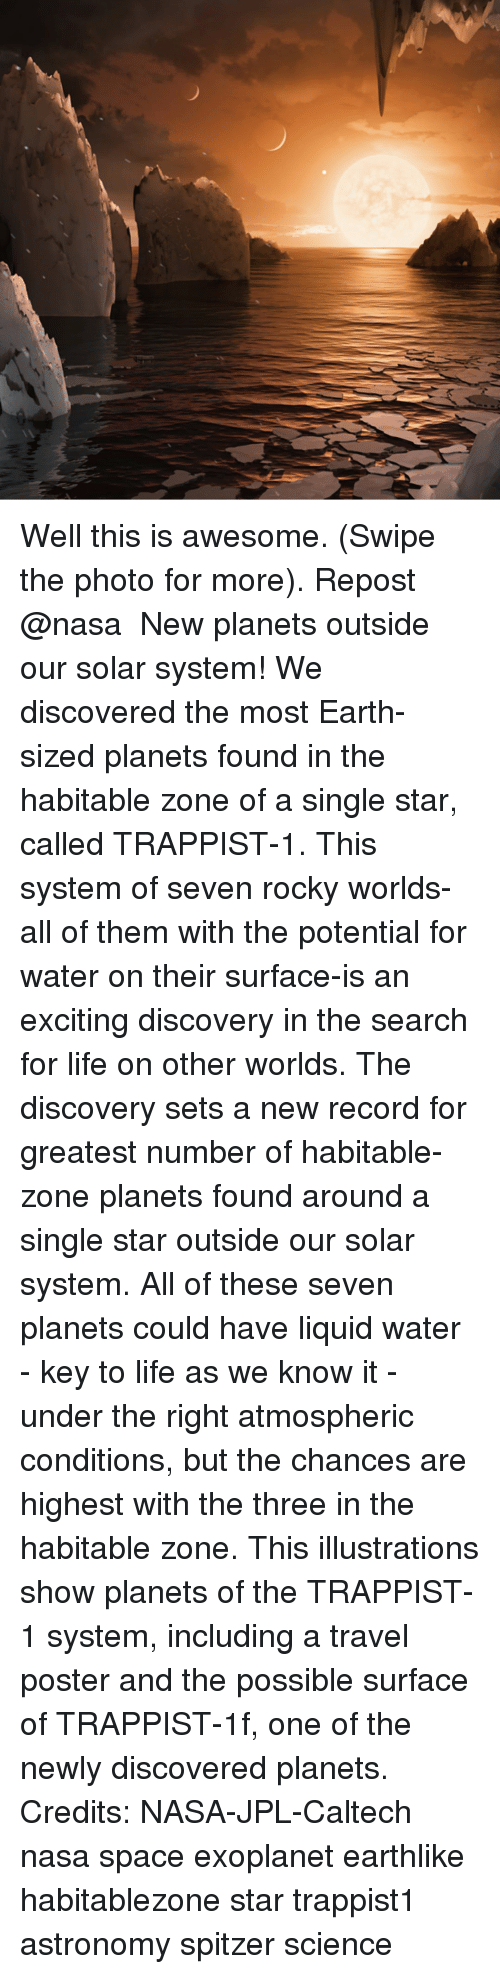 Excition: Well this is awesome. (Swipe the photo for more). Repost @nasa ・・・ New planets outside our solar system! We discovered the most Earth-sized planets found in the habitable zone of a single star, called TRAPPIST-1. This system of seven rocky worlds-all of them with the potential for water on their surface-is an exciting discovery in the search for life on other worlds. The discovery sets a new record for greatest number of habitable-zone planets found around a single star outside our solar system. All of these seven planets could have liquid water - key to life as we know it - under the right atmospheric conditions, but the chances are highest with the three in the habitable zone. This illustrations show planets of the TRAPPIST-1 system, including a travel poster and the possible surface of TRAPPIST-1f, one of the newly discovered planets. Credits: NASA-JPL-Caltech nasa space exoplanet earthlike habitablezone star trappist1 astronomy spitzer science